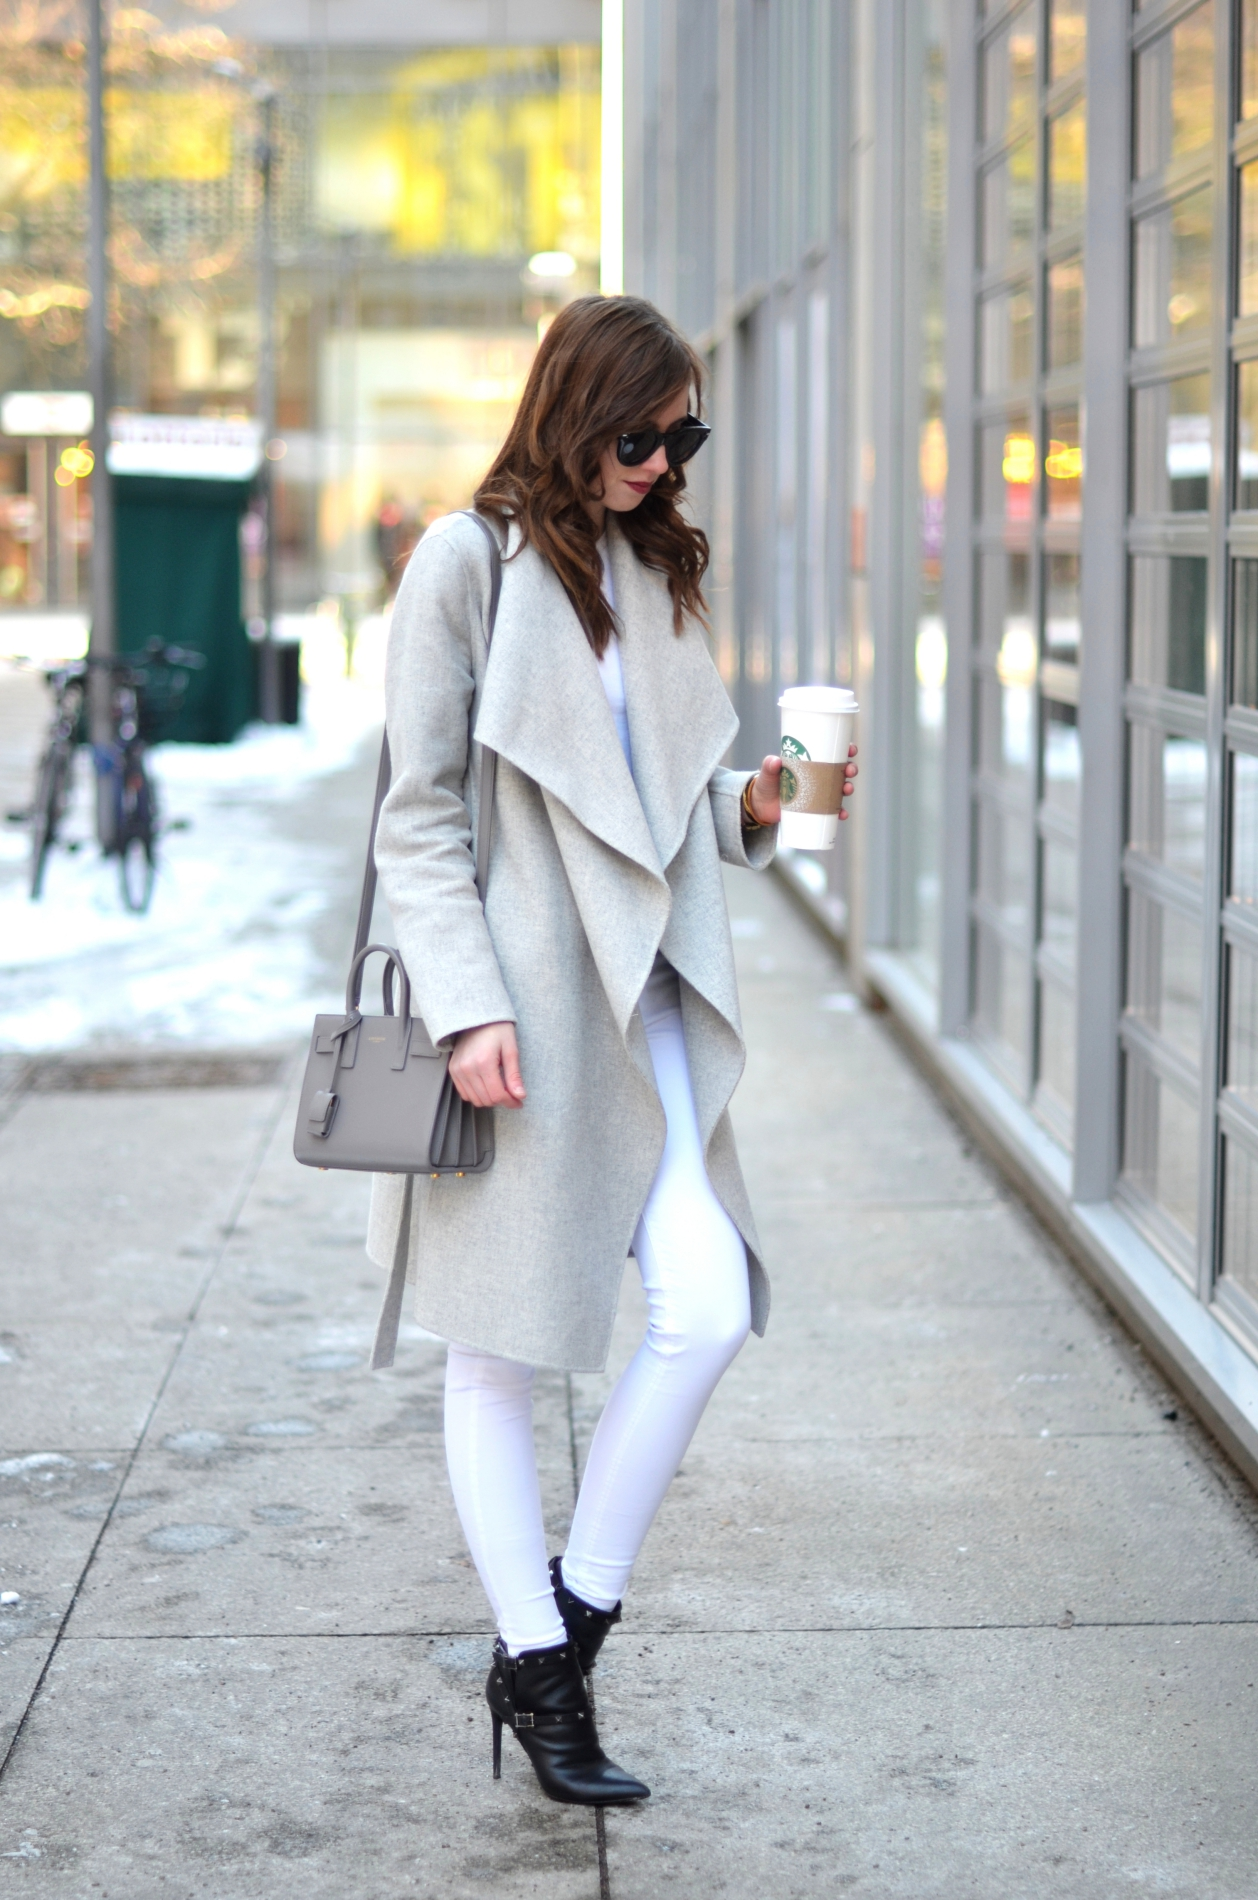 51afe429b4 Barbora Ondrackova looks ultra sleek in this white jeans outfit consisting  of a pale beige wrap